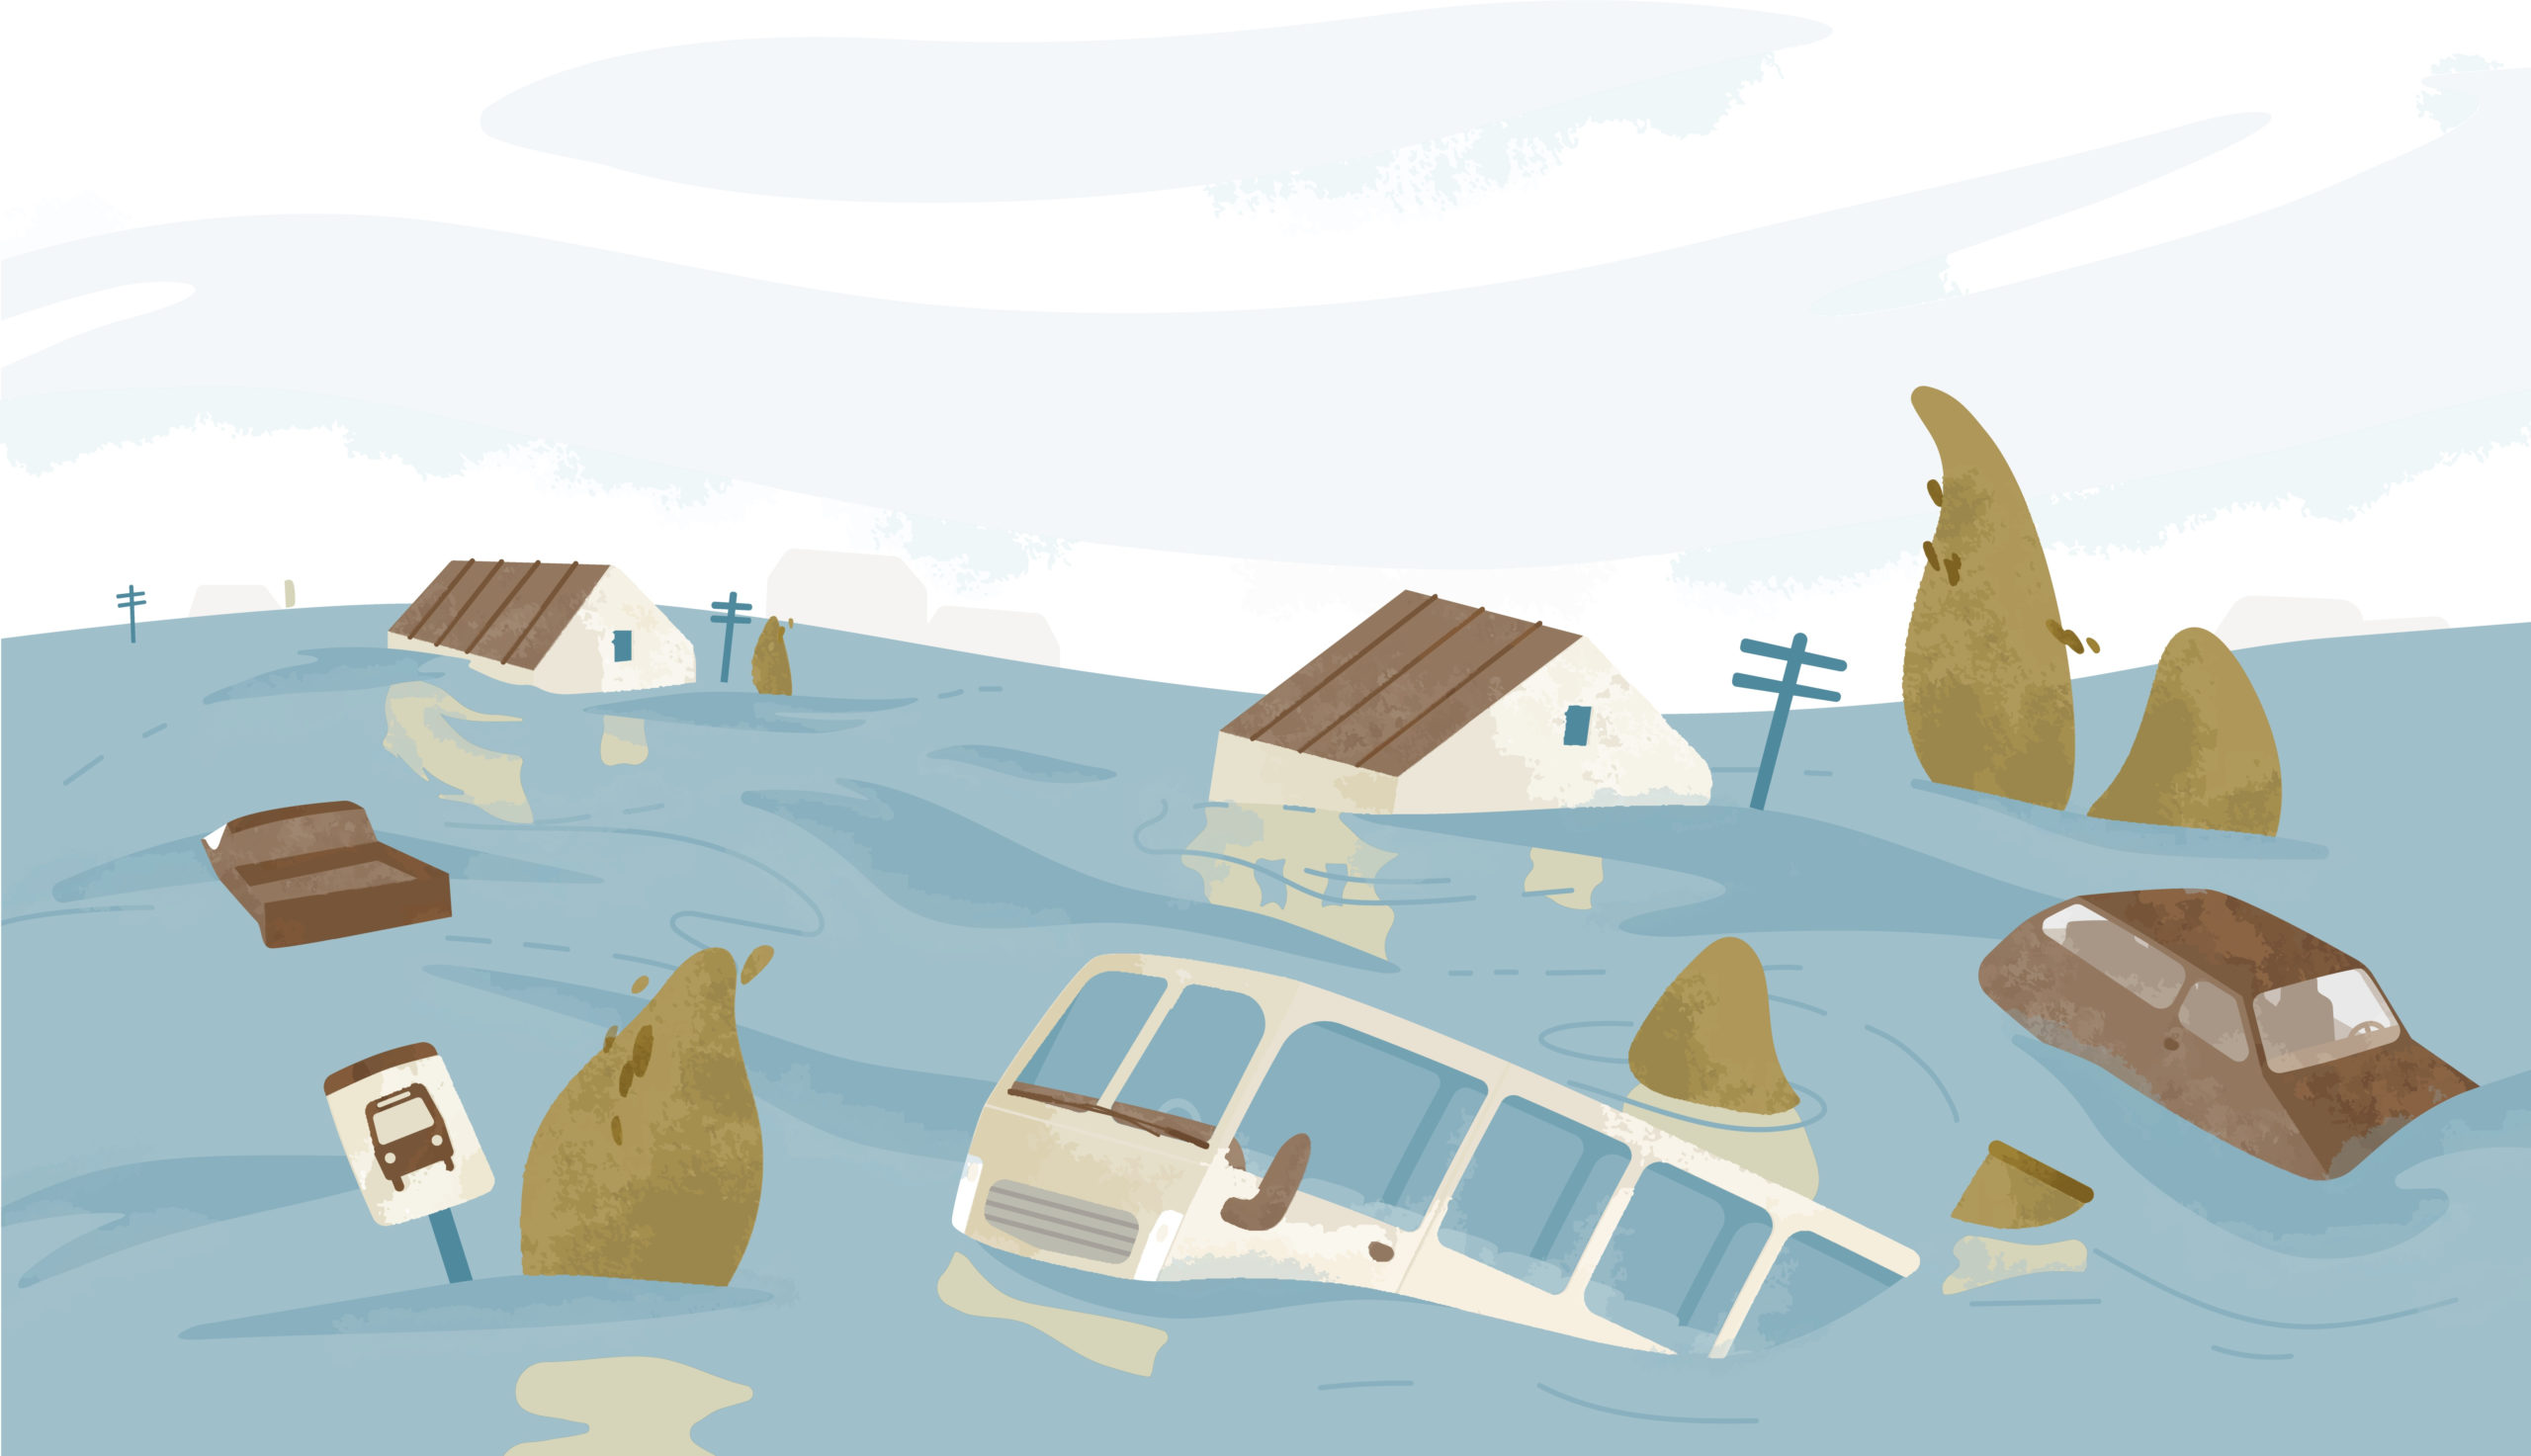 houses and bus underwater from flood